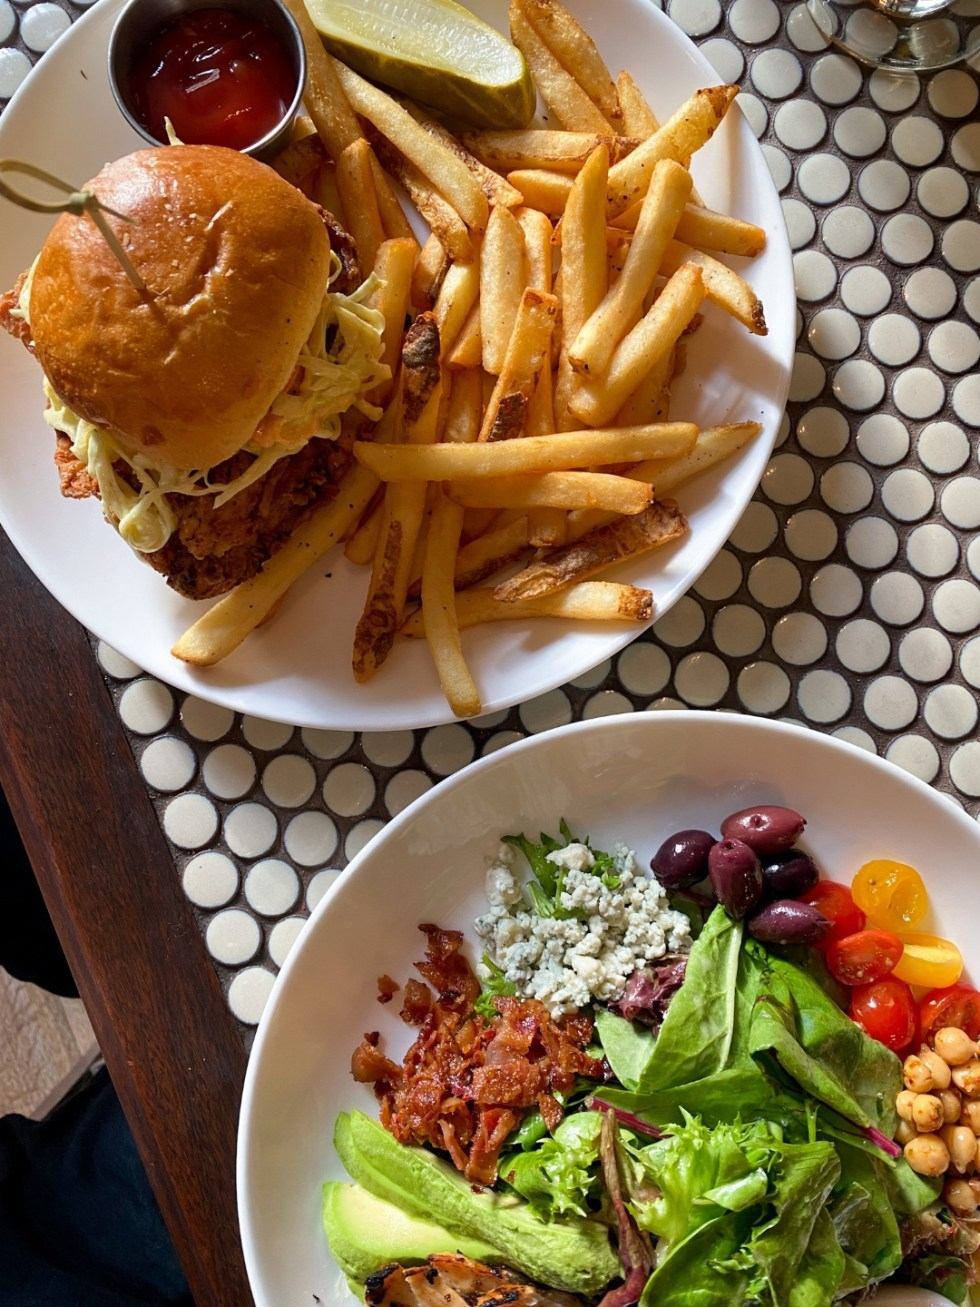 NYC Summer Weekend: Things to Do in NYC in the Summer - I'm Fixin' To - @imfixintoblog   xNYC Summer Weekend by popular NC travel blog, I'm Fixin' To: image of Madison and Vine food.